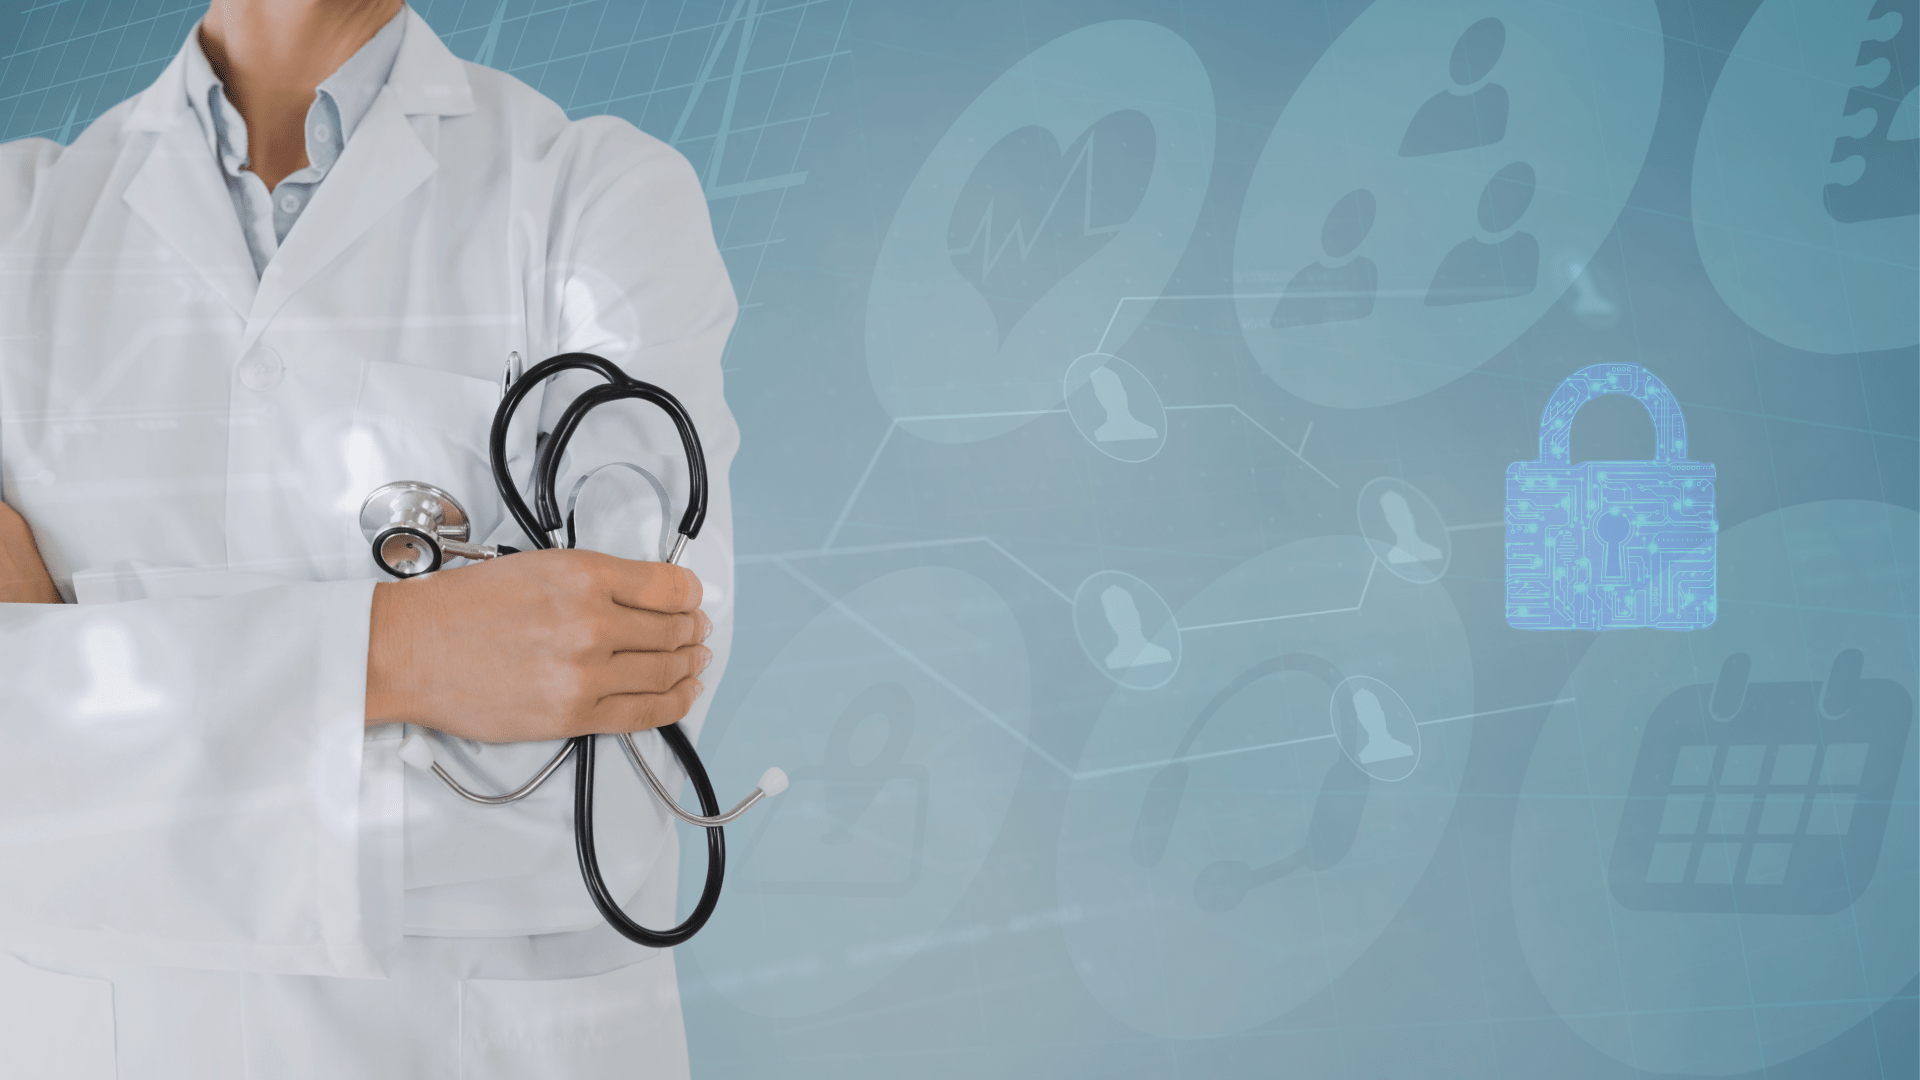 Data Privacy Law and the Impact on the Health Care Area